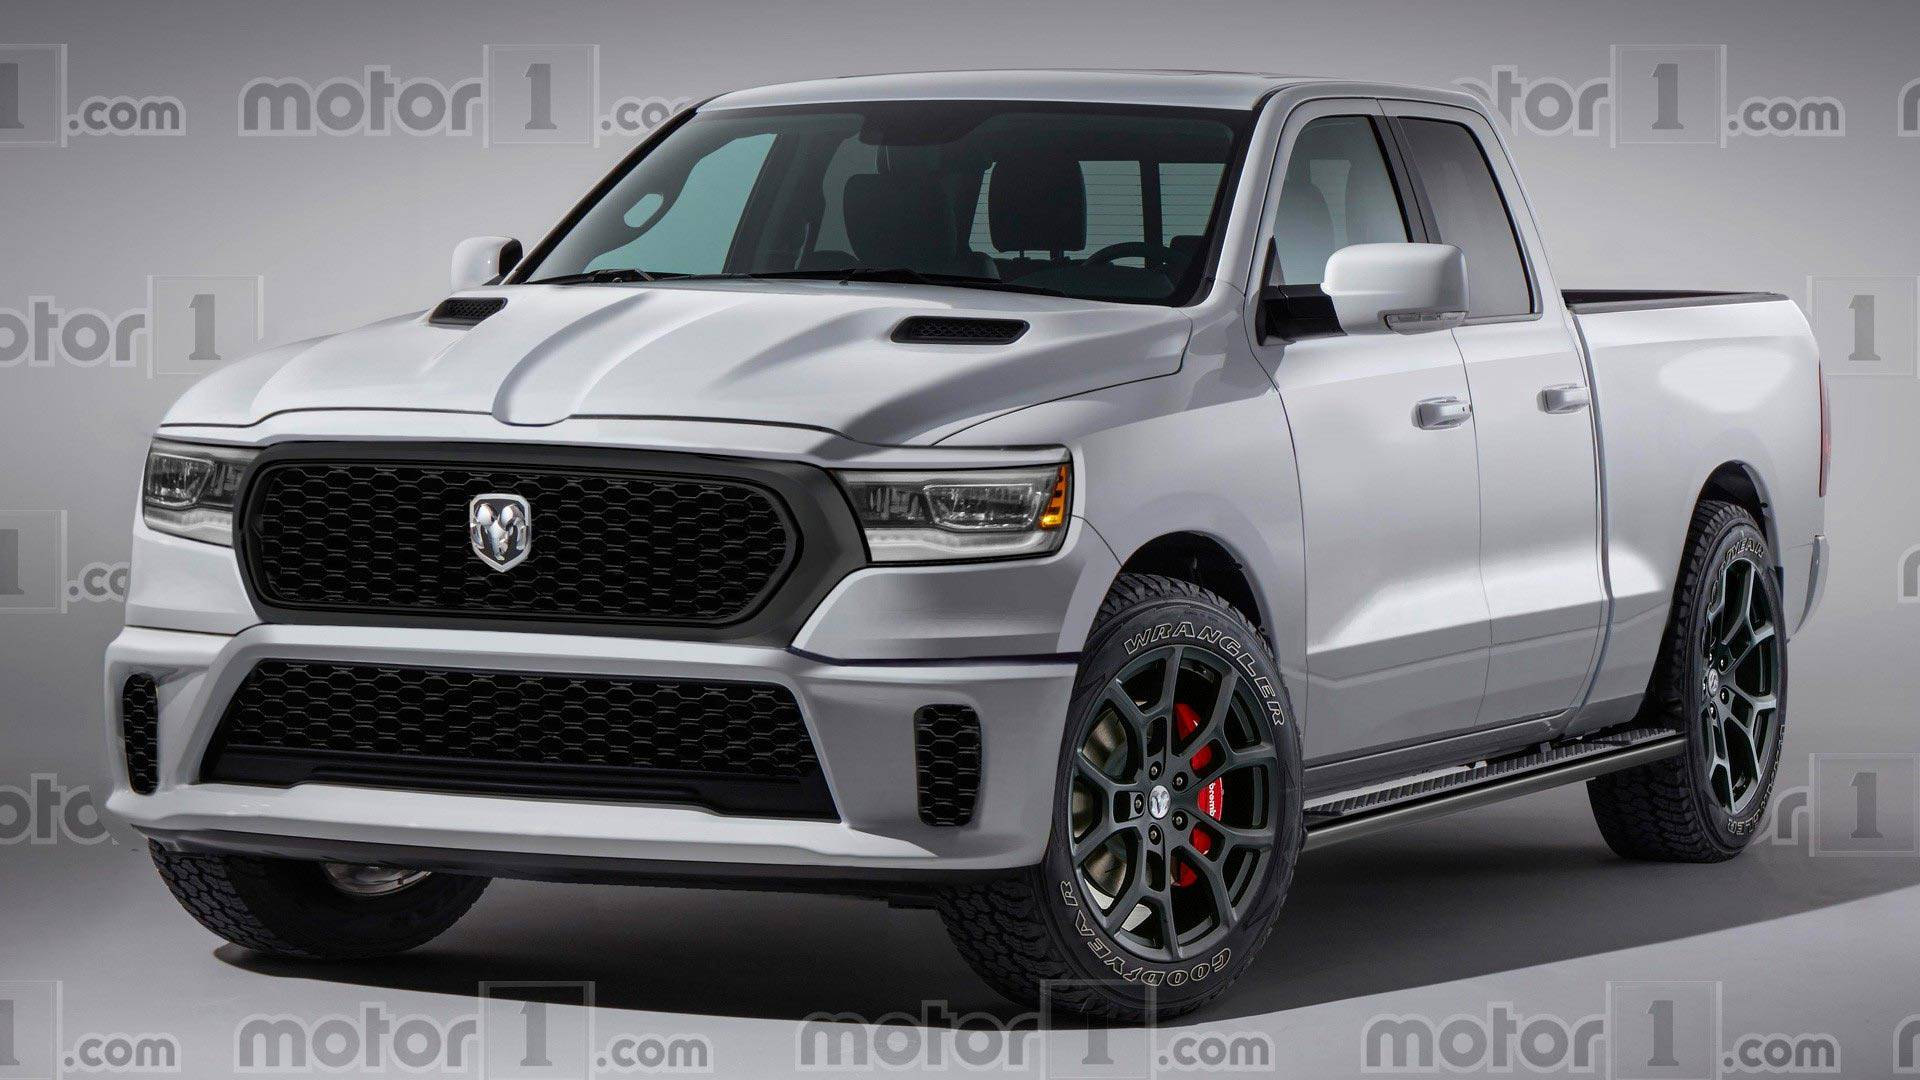 96 New 2020 Dodge Ram 1500 Release Date